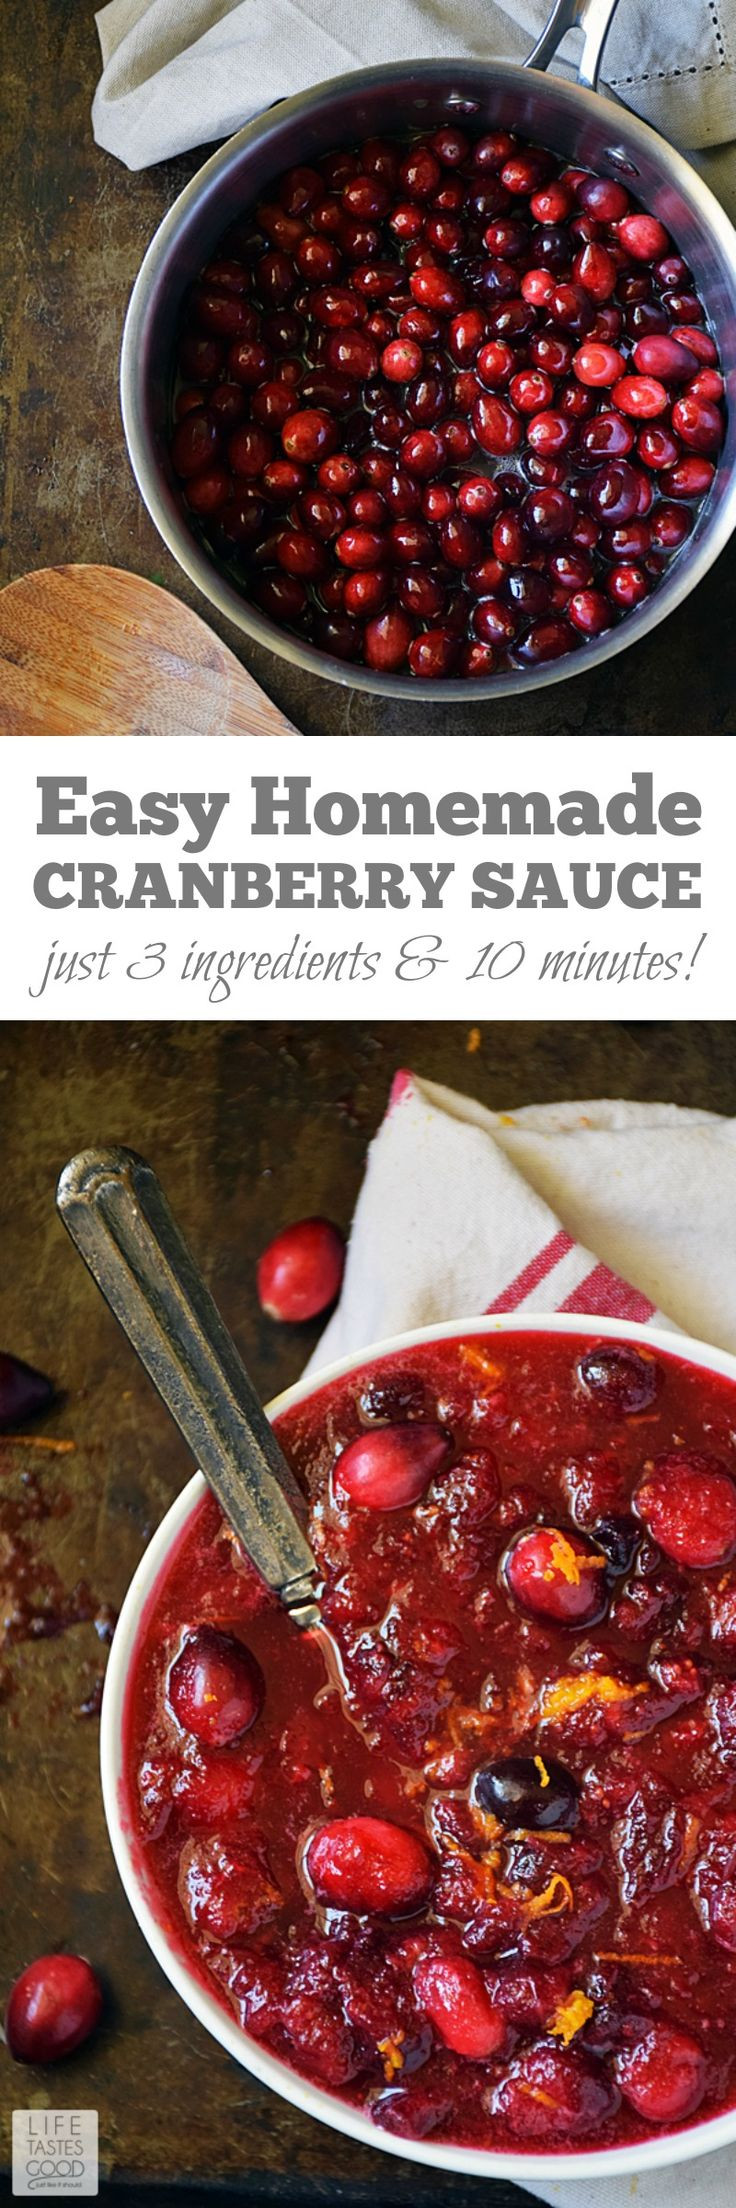 Cranberry Recipes For Thanksgiving  Easy Homemade Cranberry Sauce